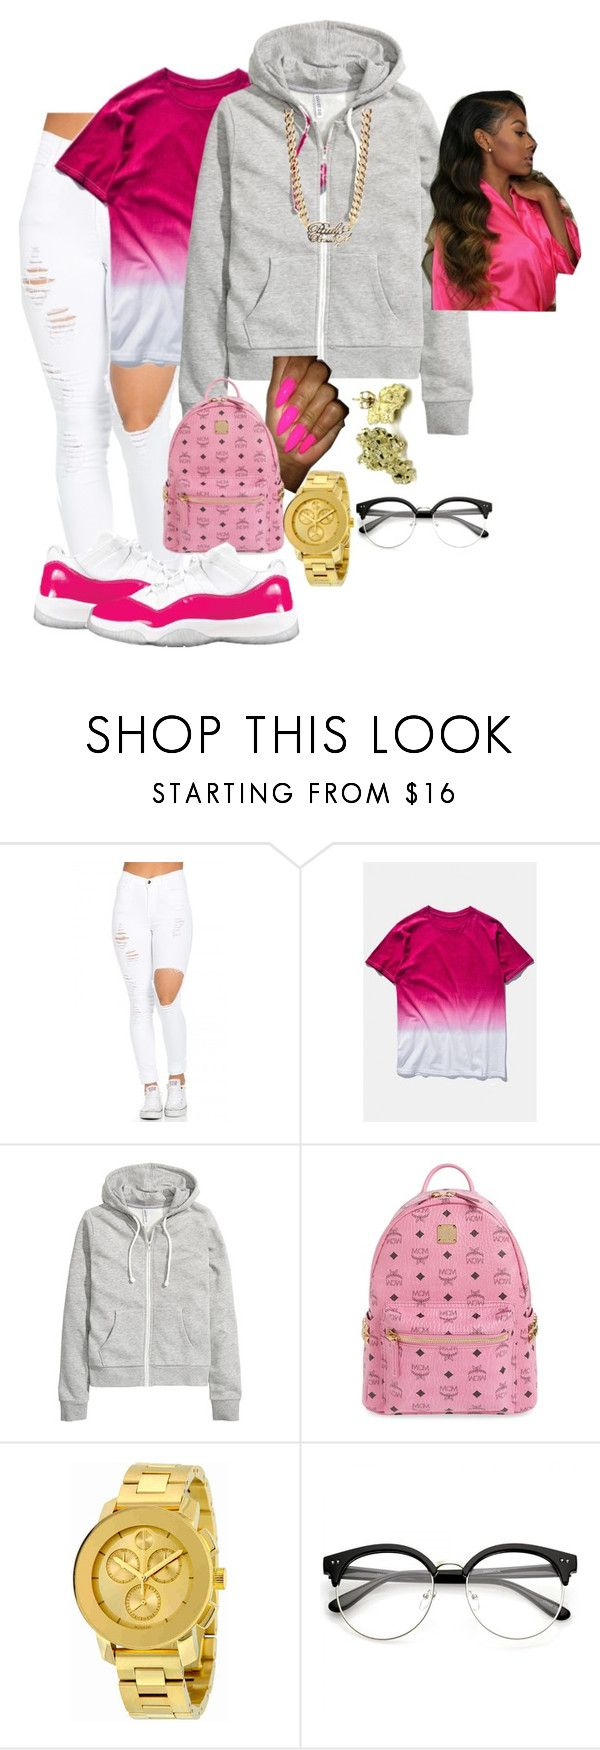 """""""pink"""" by queenaaliiyah ❤ liked on Polyvore featuring WithChic, H&M, MCM, Movado and Paul's Boutique"""